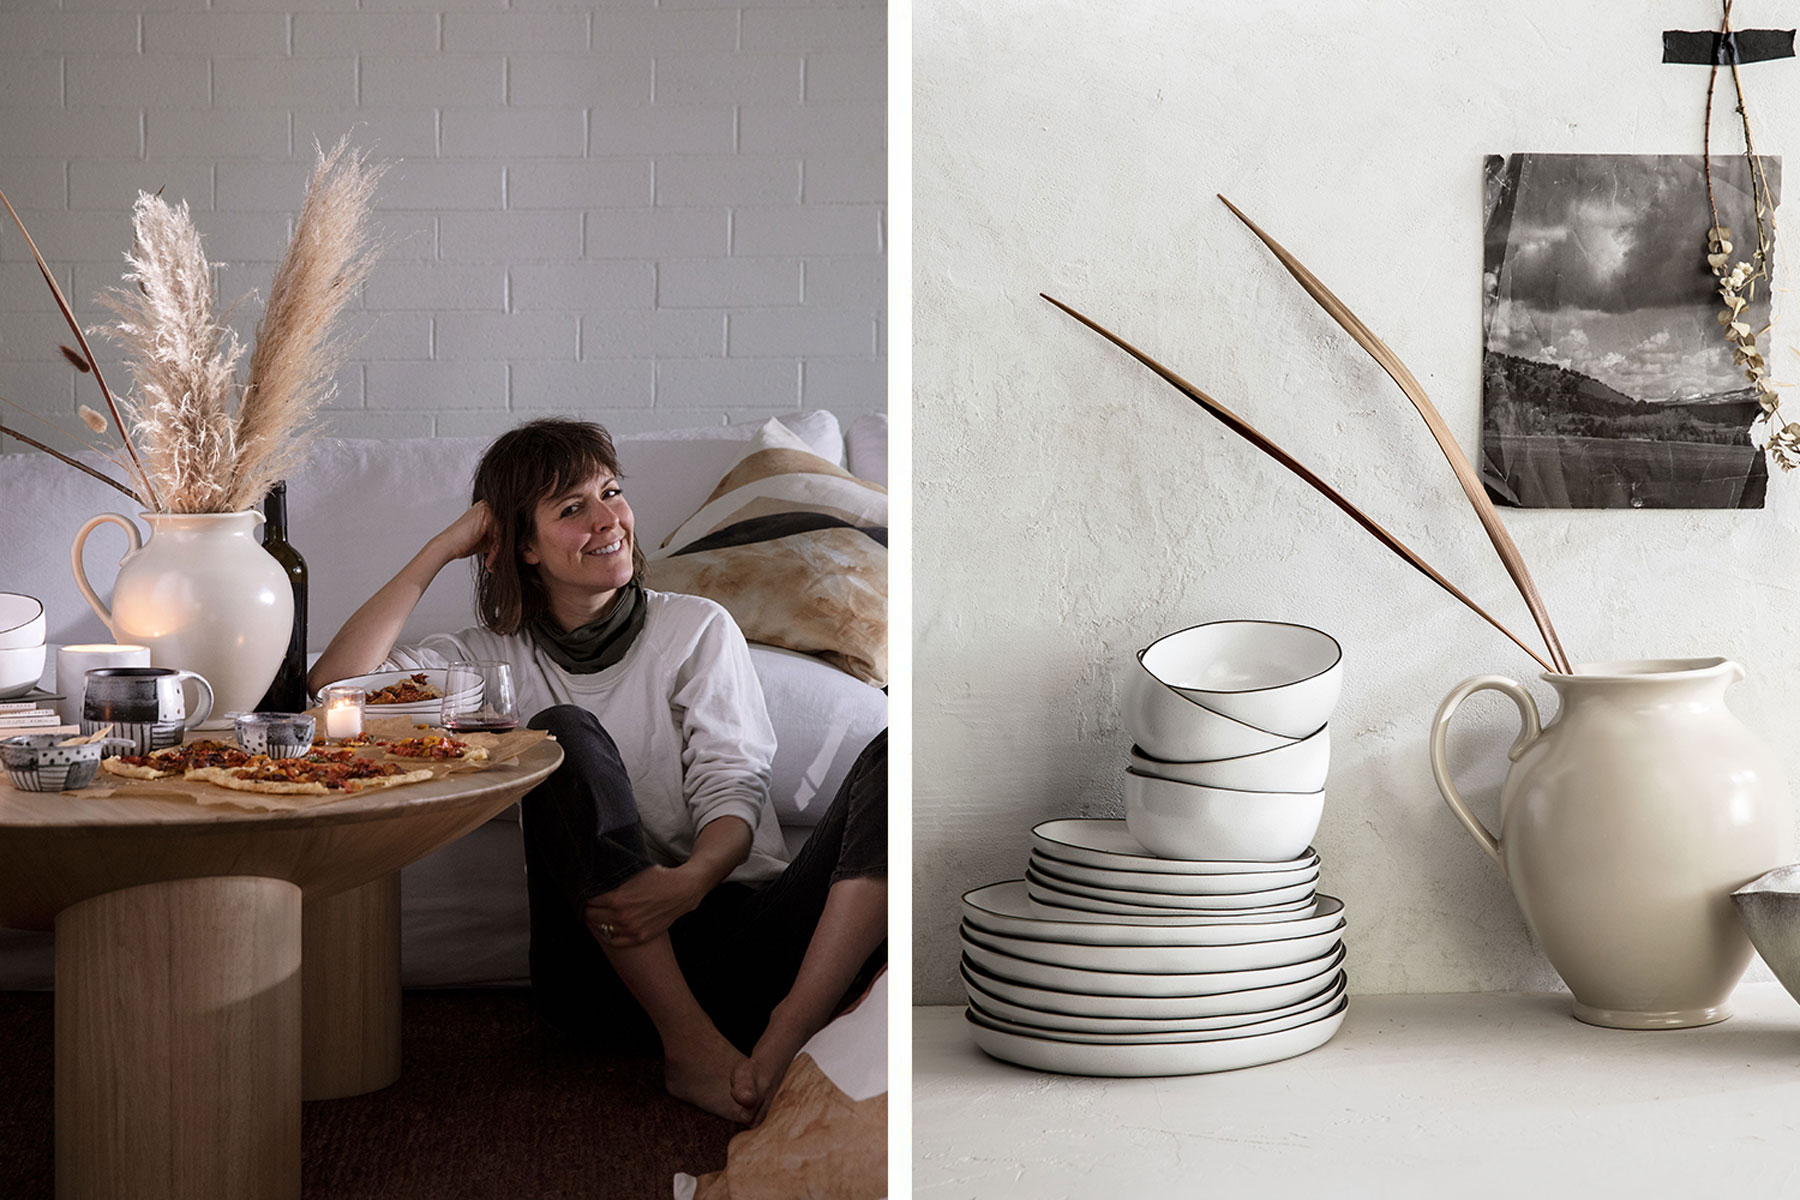 Leanne Ford sitting in floor with pizza, plates and bowls stacked